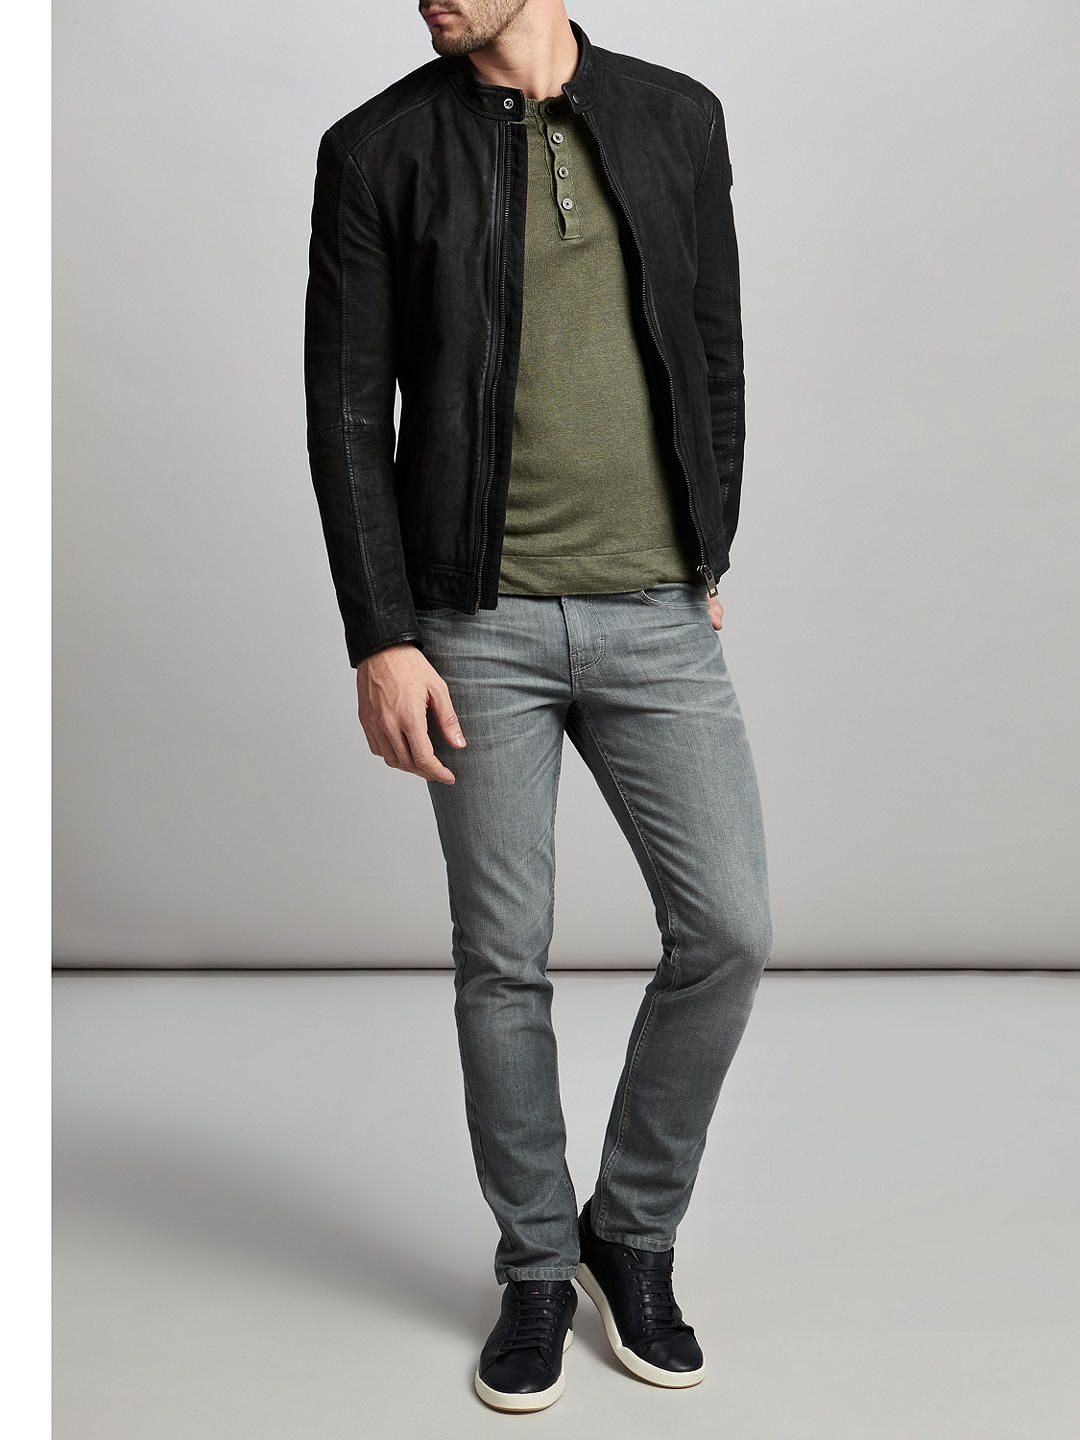 best sneakers best selection of 2019 shop for newest HUGO BOSS Jonate, Leather Jacket | Men Leather Jacket in ...